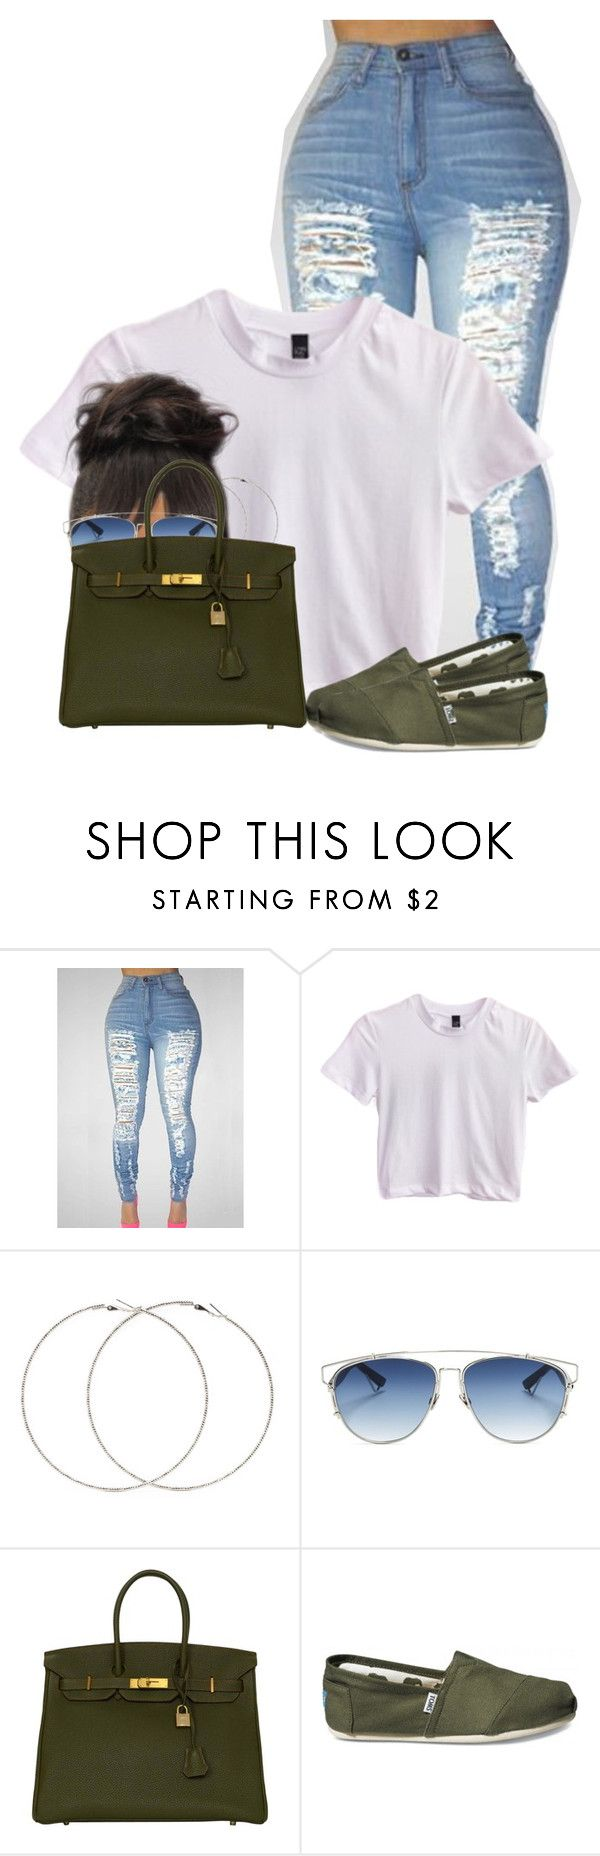 """""""Untitled #2615"""" by alisha-caprise ❤ liked on Polyvore featuring Forever 21, Christian Dior, Hermès and TOMS"""